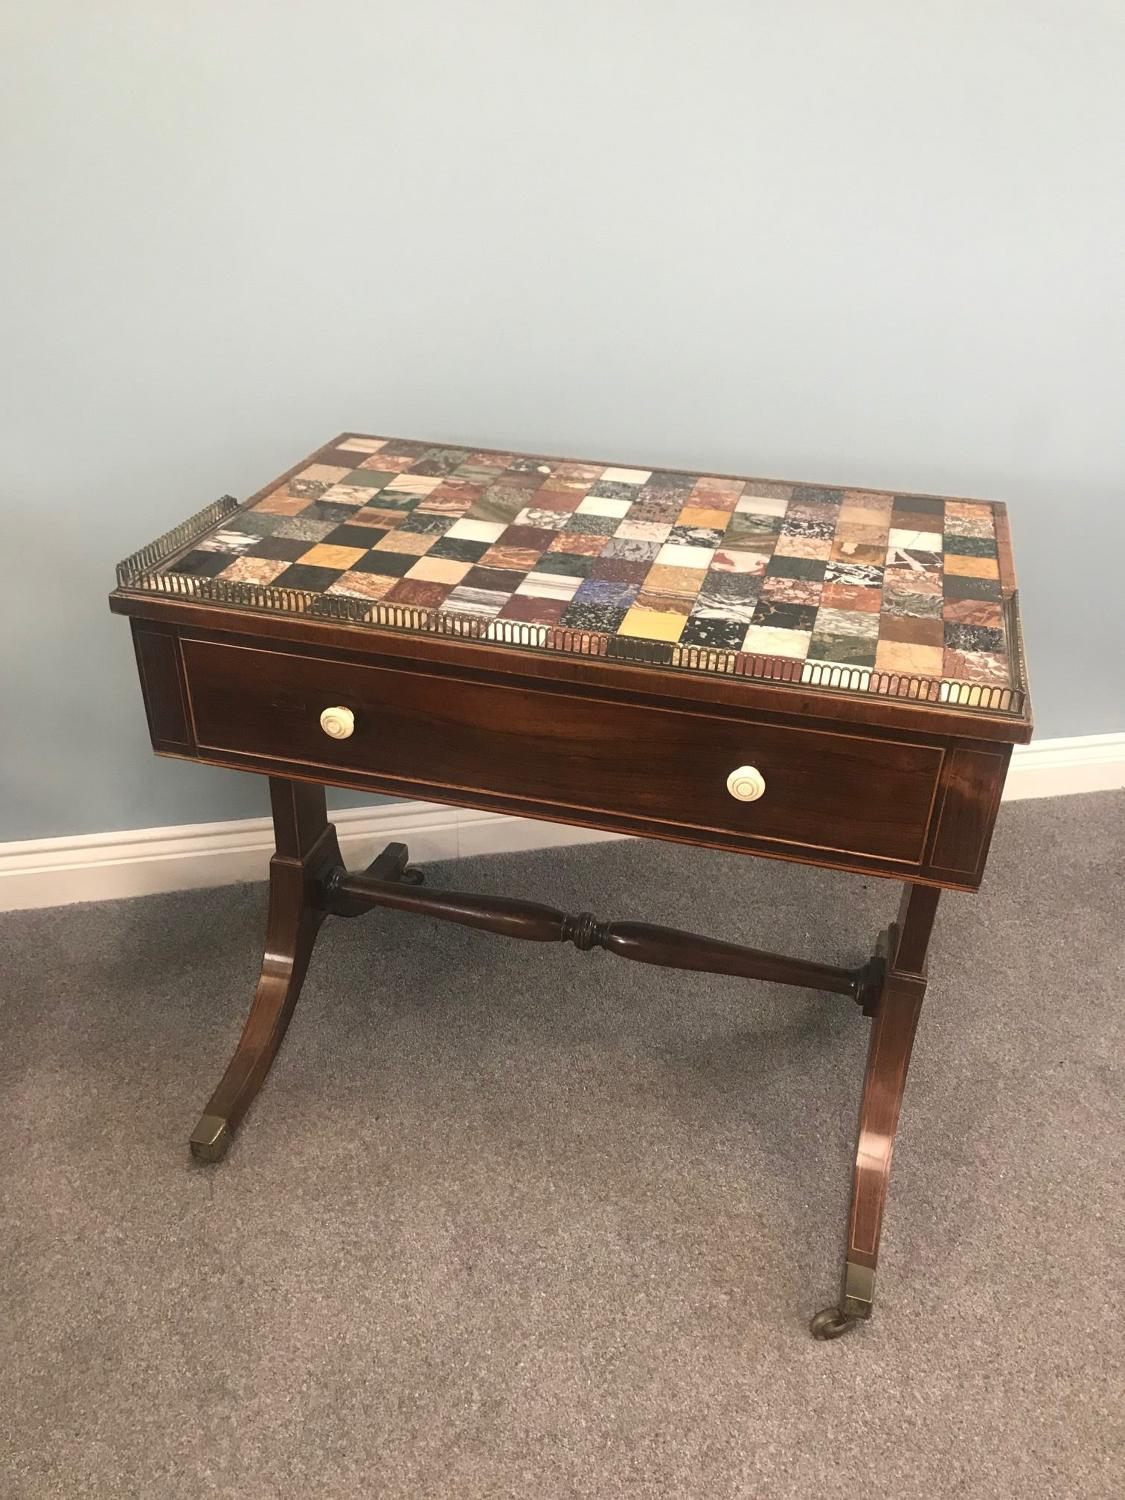 A Regency Mahogany Specimen Marble topped Writing Desk